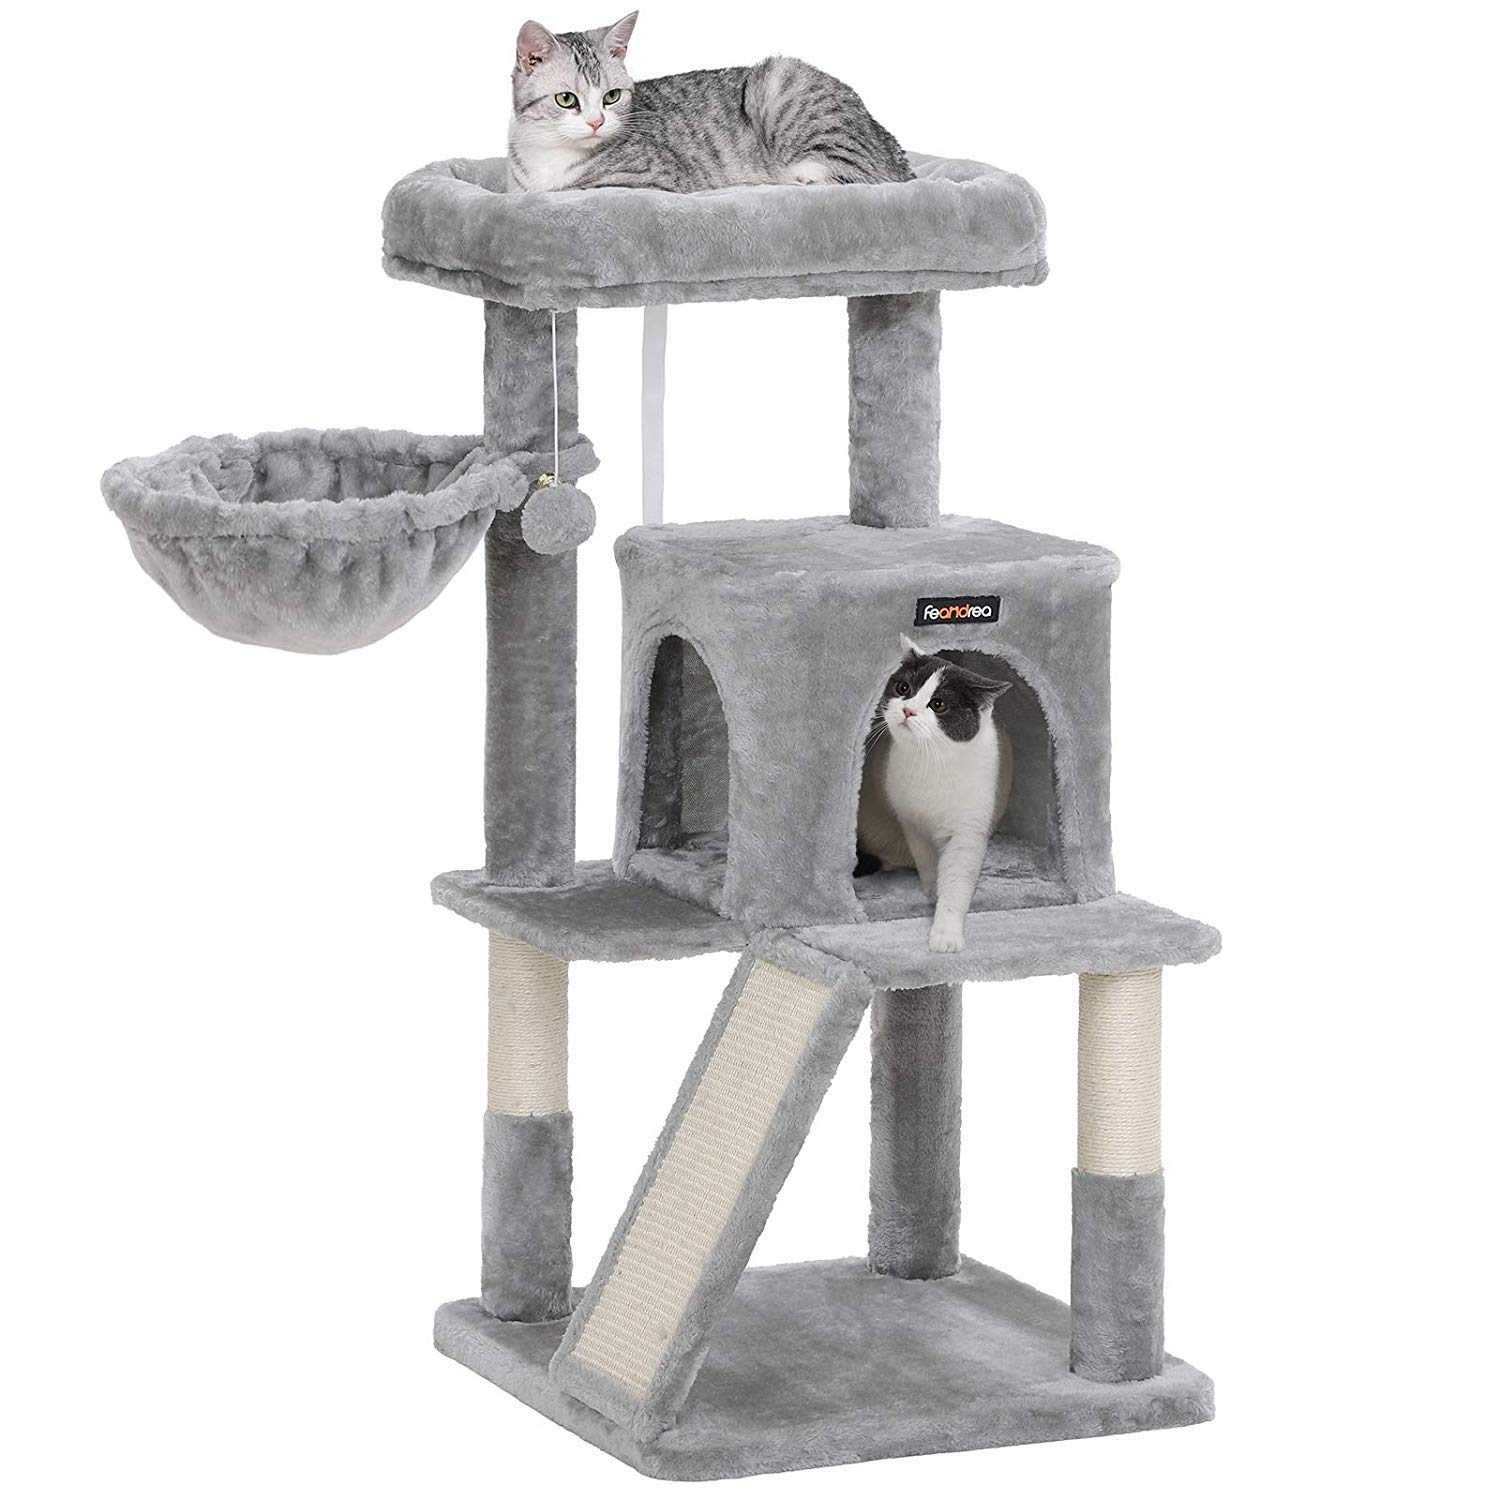 FEANDREA Cat Tree with Sisal-Covered Scratching Posts UPCT51W by FEANDREA